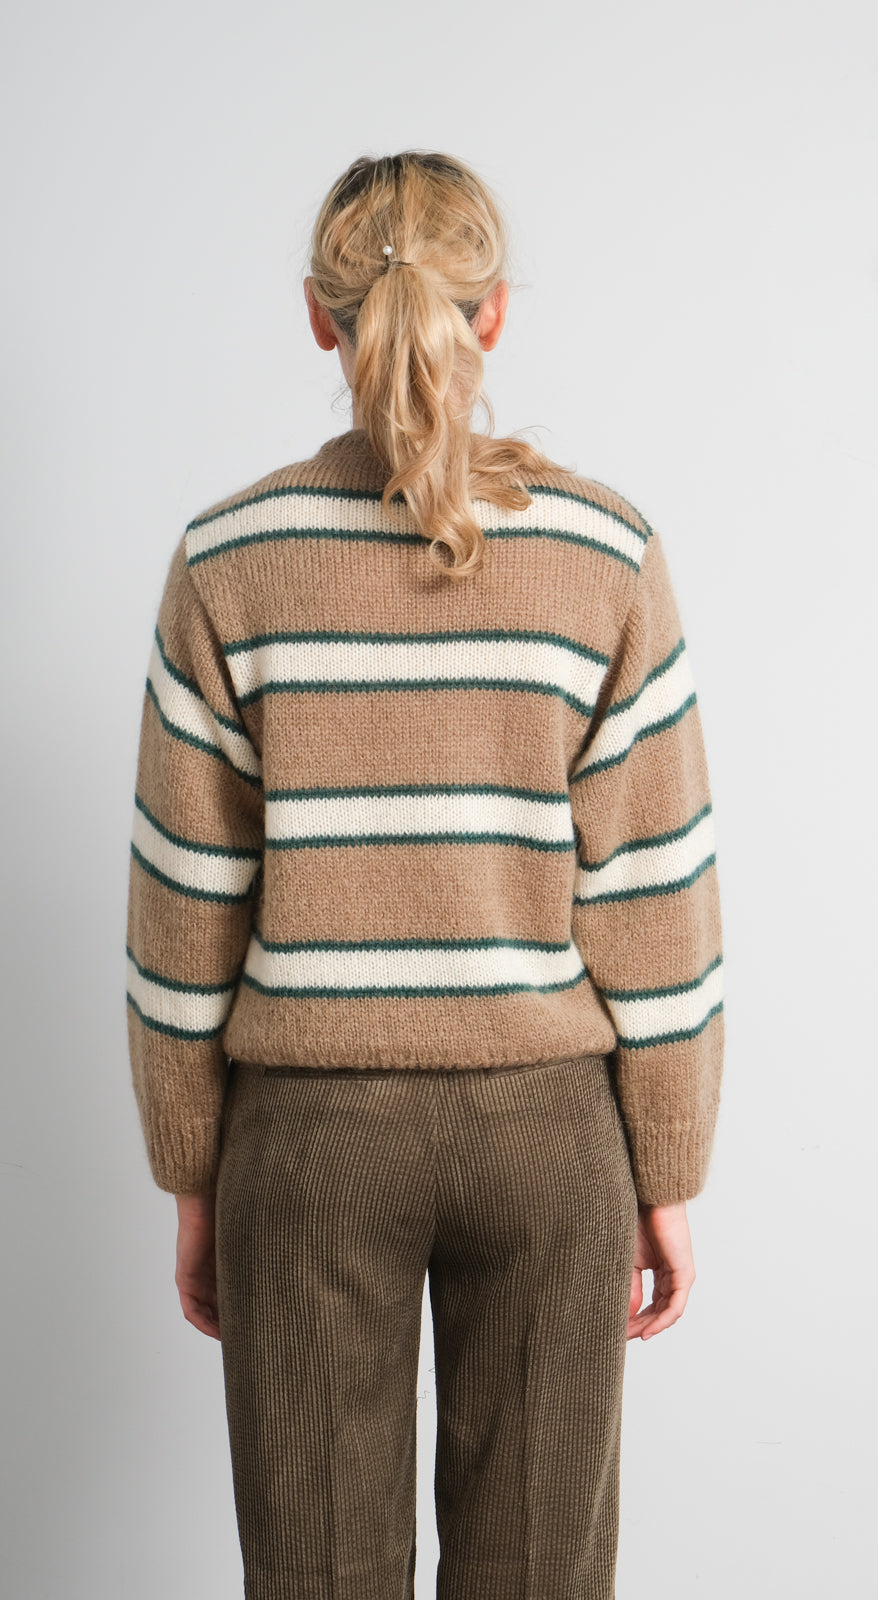 LOR Franja stripe knit in sand